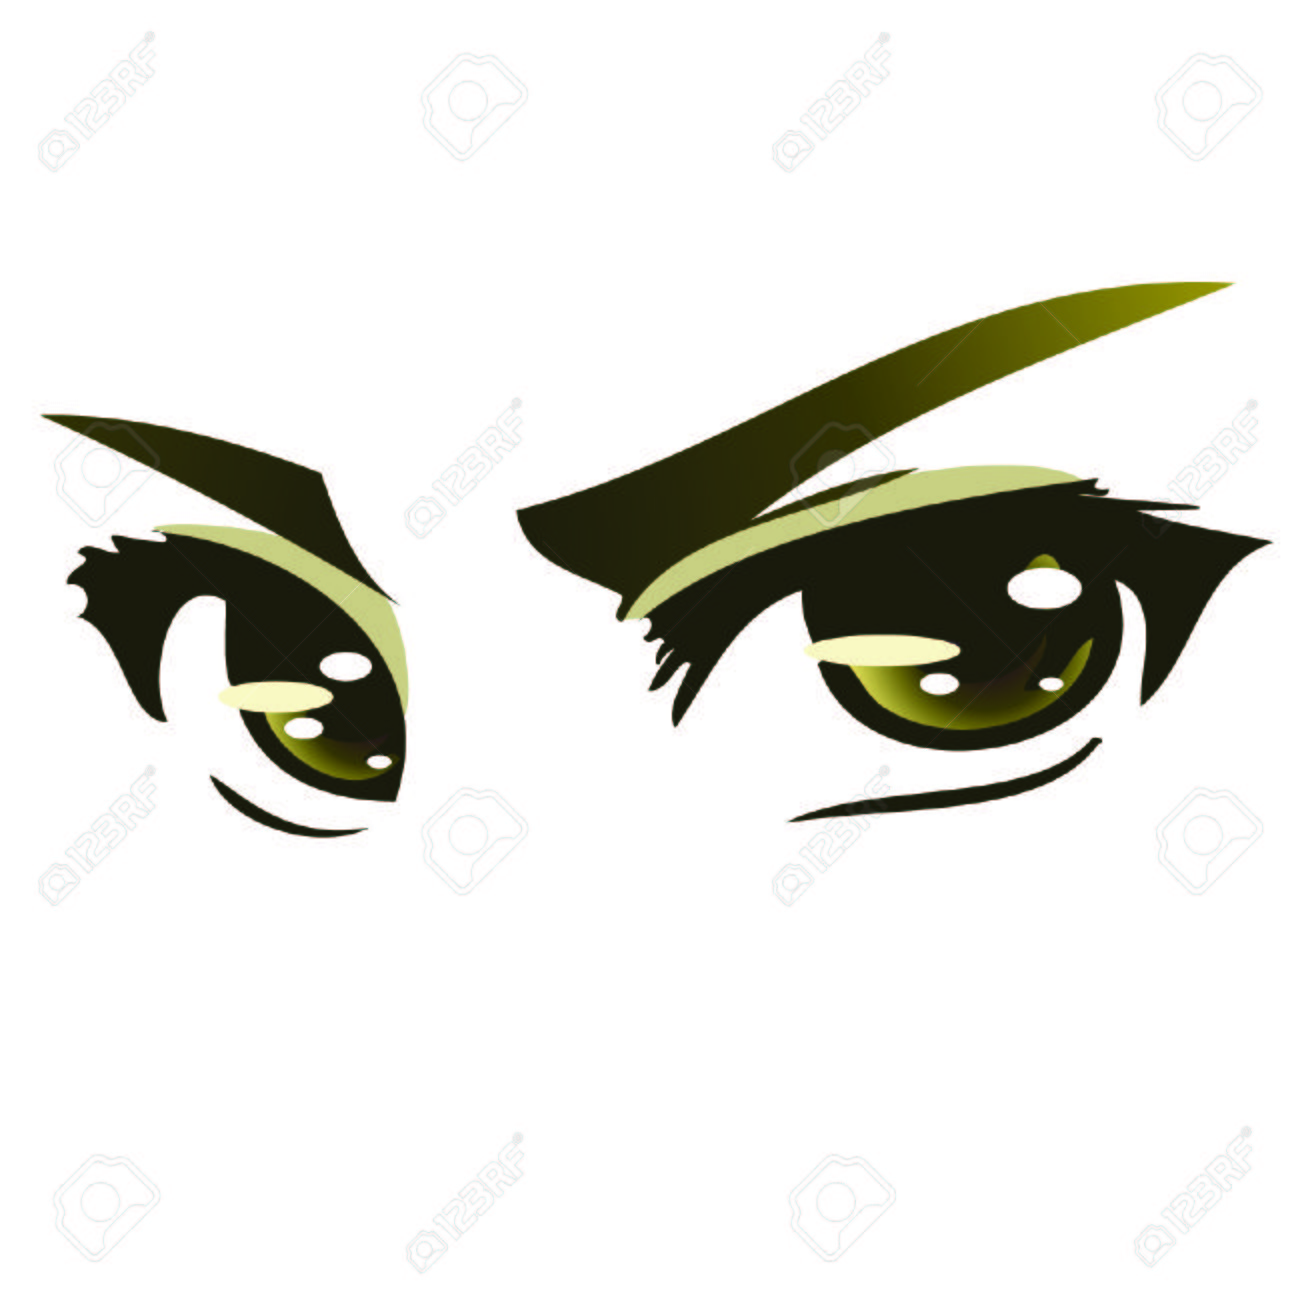 Green Intense Anime Eyes Royalty Free Cliparts  Vectors  And Stock     Green Intense Anime eyes Stock Vector   43452419